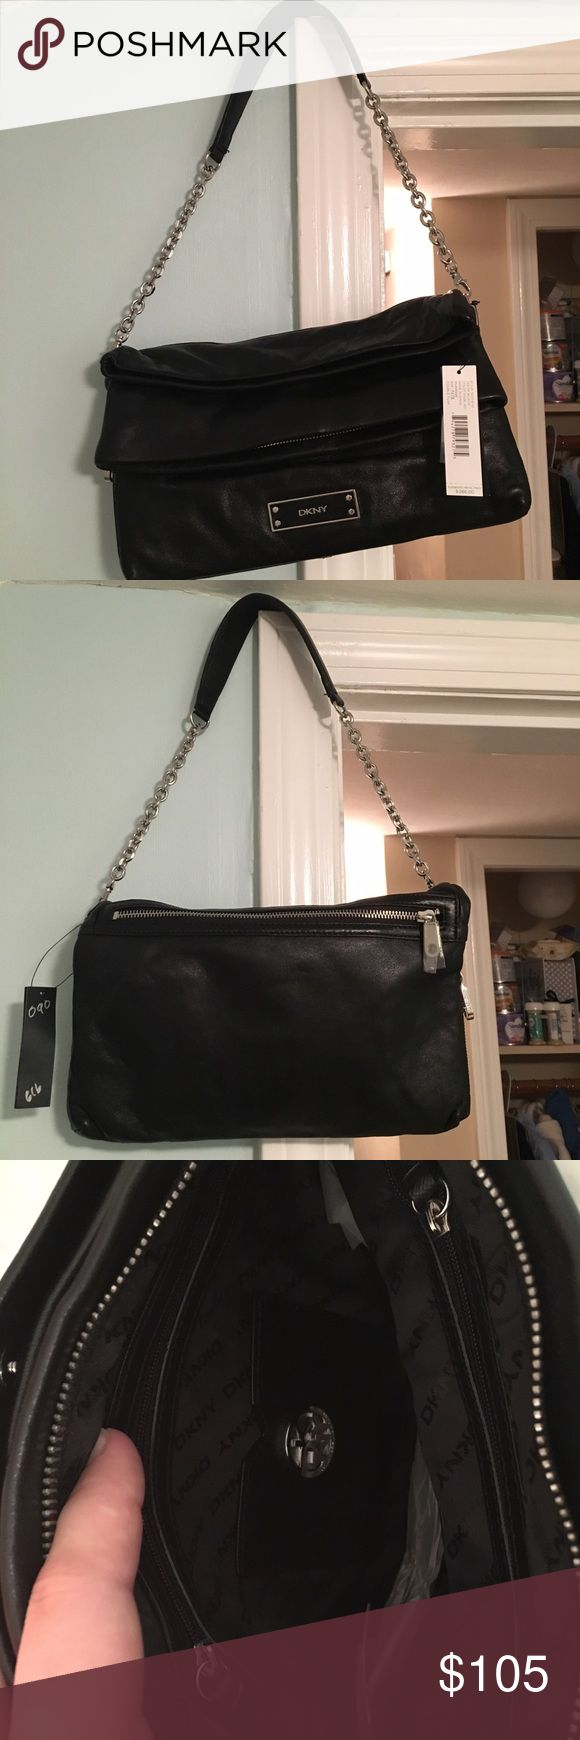 DKNY Shoulder bag Black genuine leather DKNY handbag. Brand new. Authentic. Never been used. Has multiple pockets for storage. Still has tags! Silver embellishments! DKNY Bags Shoulder Bags